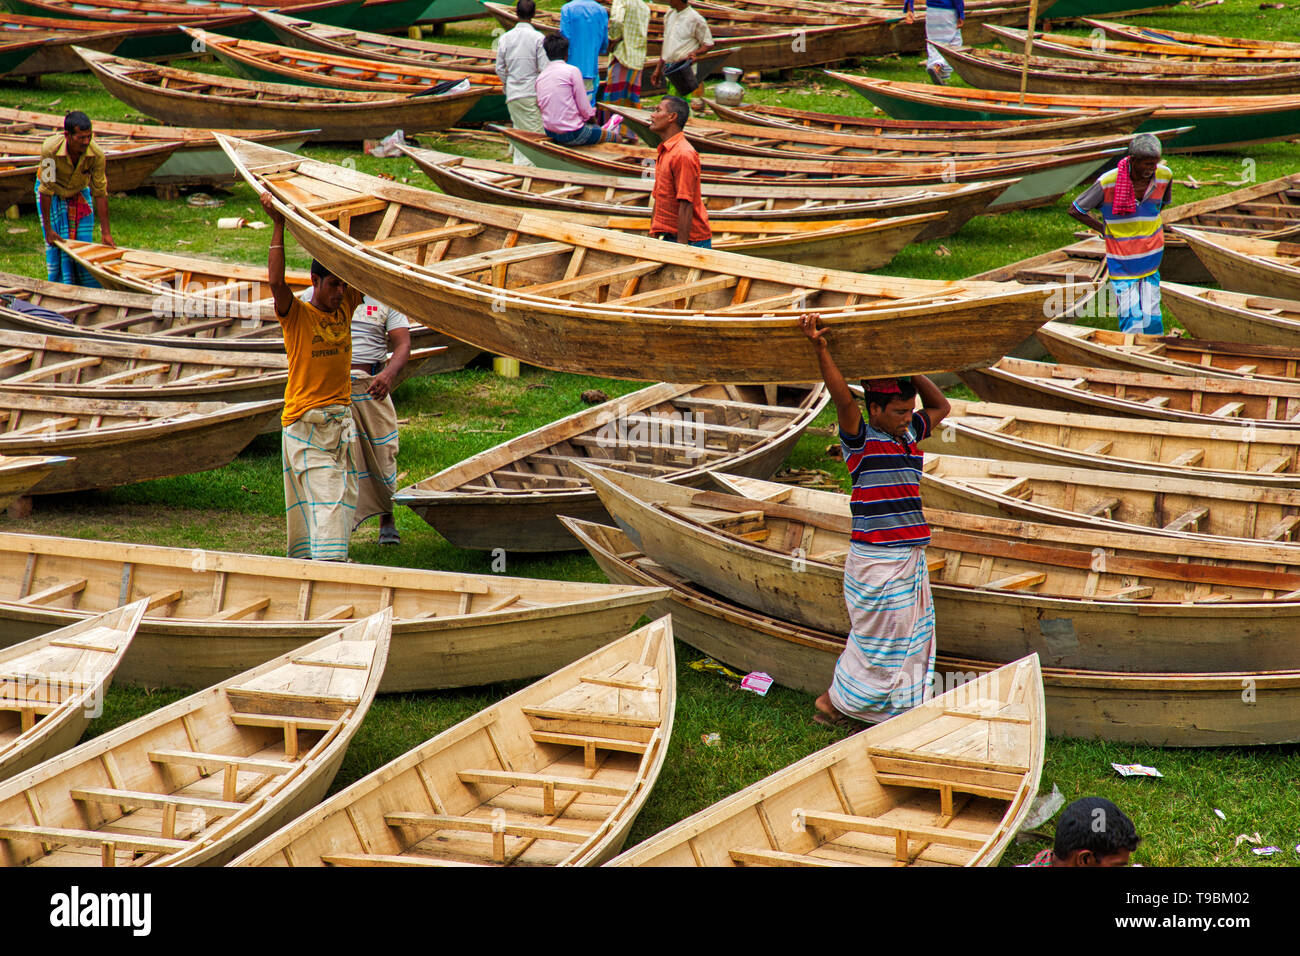 Craftsmen seen carrying a boat among hundreds of little wooden boats displayed for sale at a market as locals prepare for monsoon season.  Dozens flock from miles around to buy their own boat at a market in Manikganj, Bangladesh, so as to be prepared for floods which can strike at any time. After heavy rainfall it is common for river banks to burst, submerging nearby towns and villages. This means cars and buses become redundant and people are forced to travel by boat. Each of the wooden boats and oars are hand-made by local craftsmen and can be bought for as little as 1700 Bangladeshi Taka -  - Stock Image